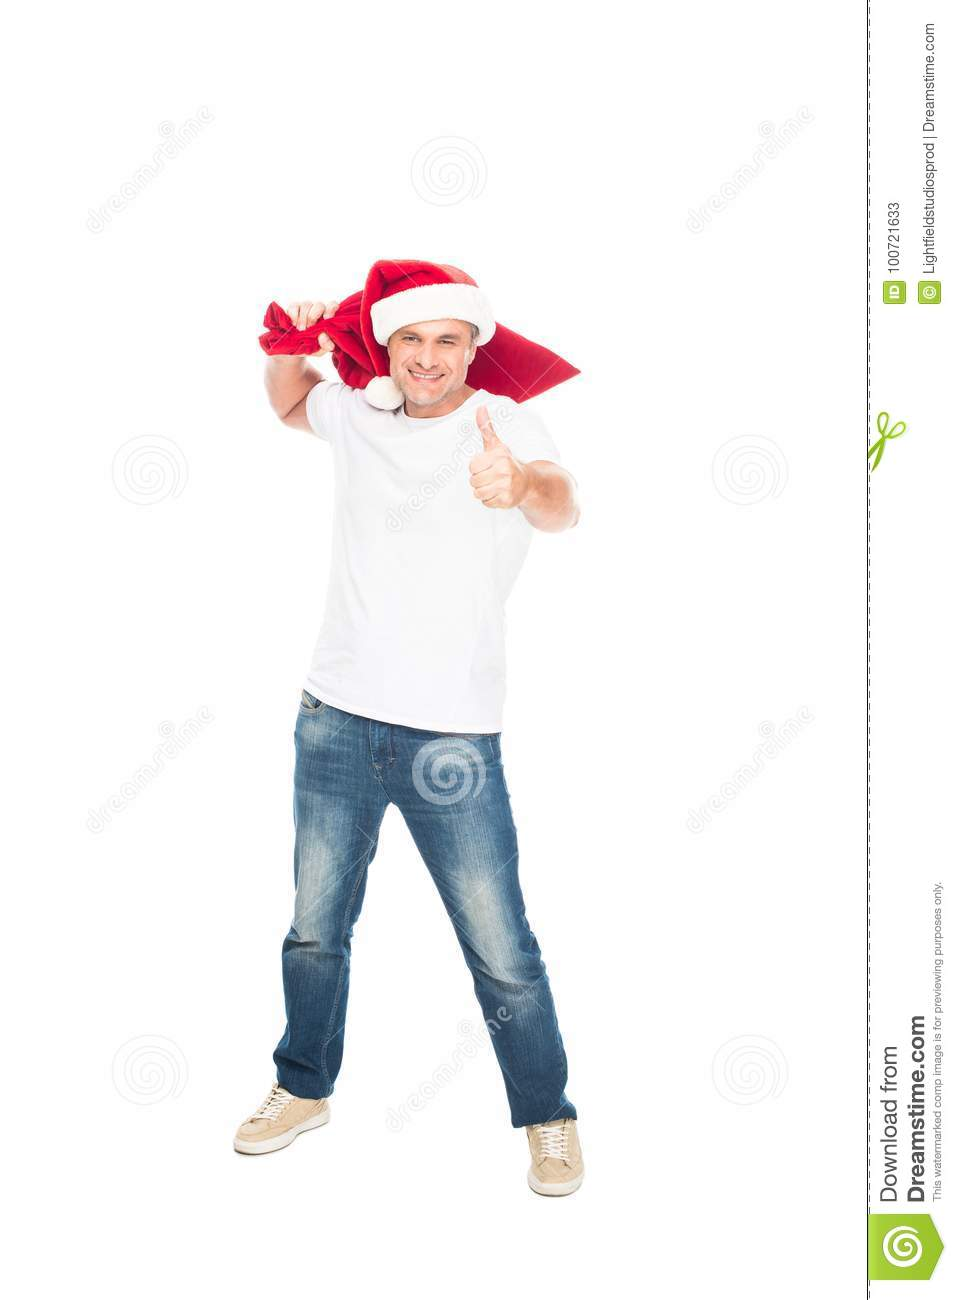 5c0a223a4306c Happy man in Santa hat with big bag full of presents for Christmas showing  thumb up